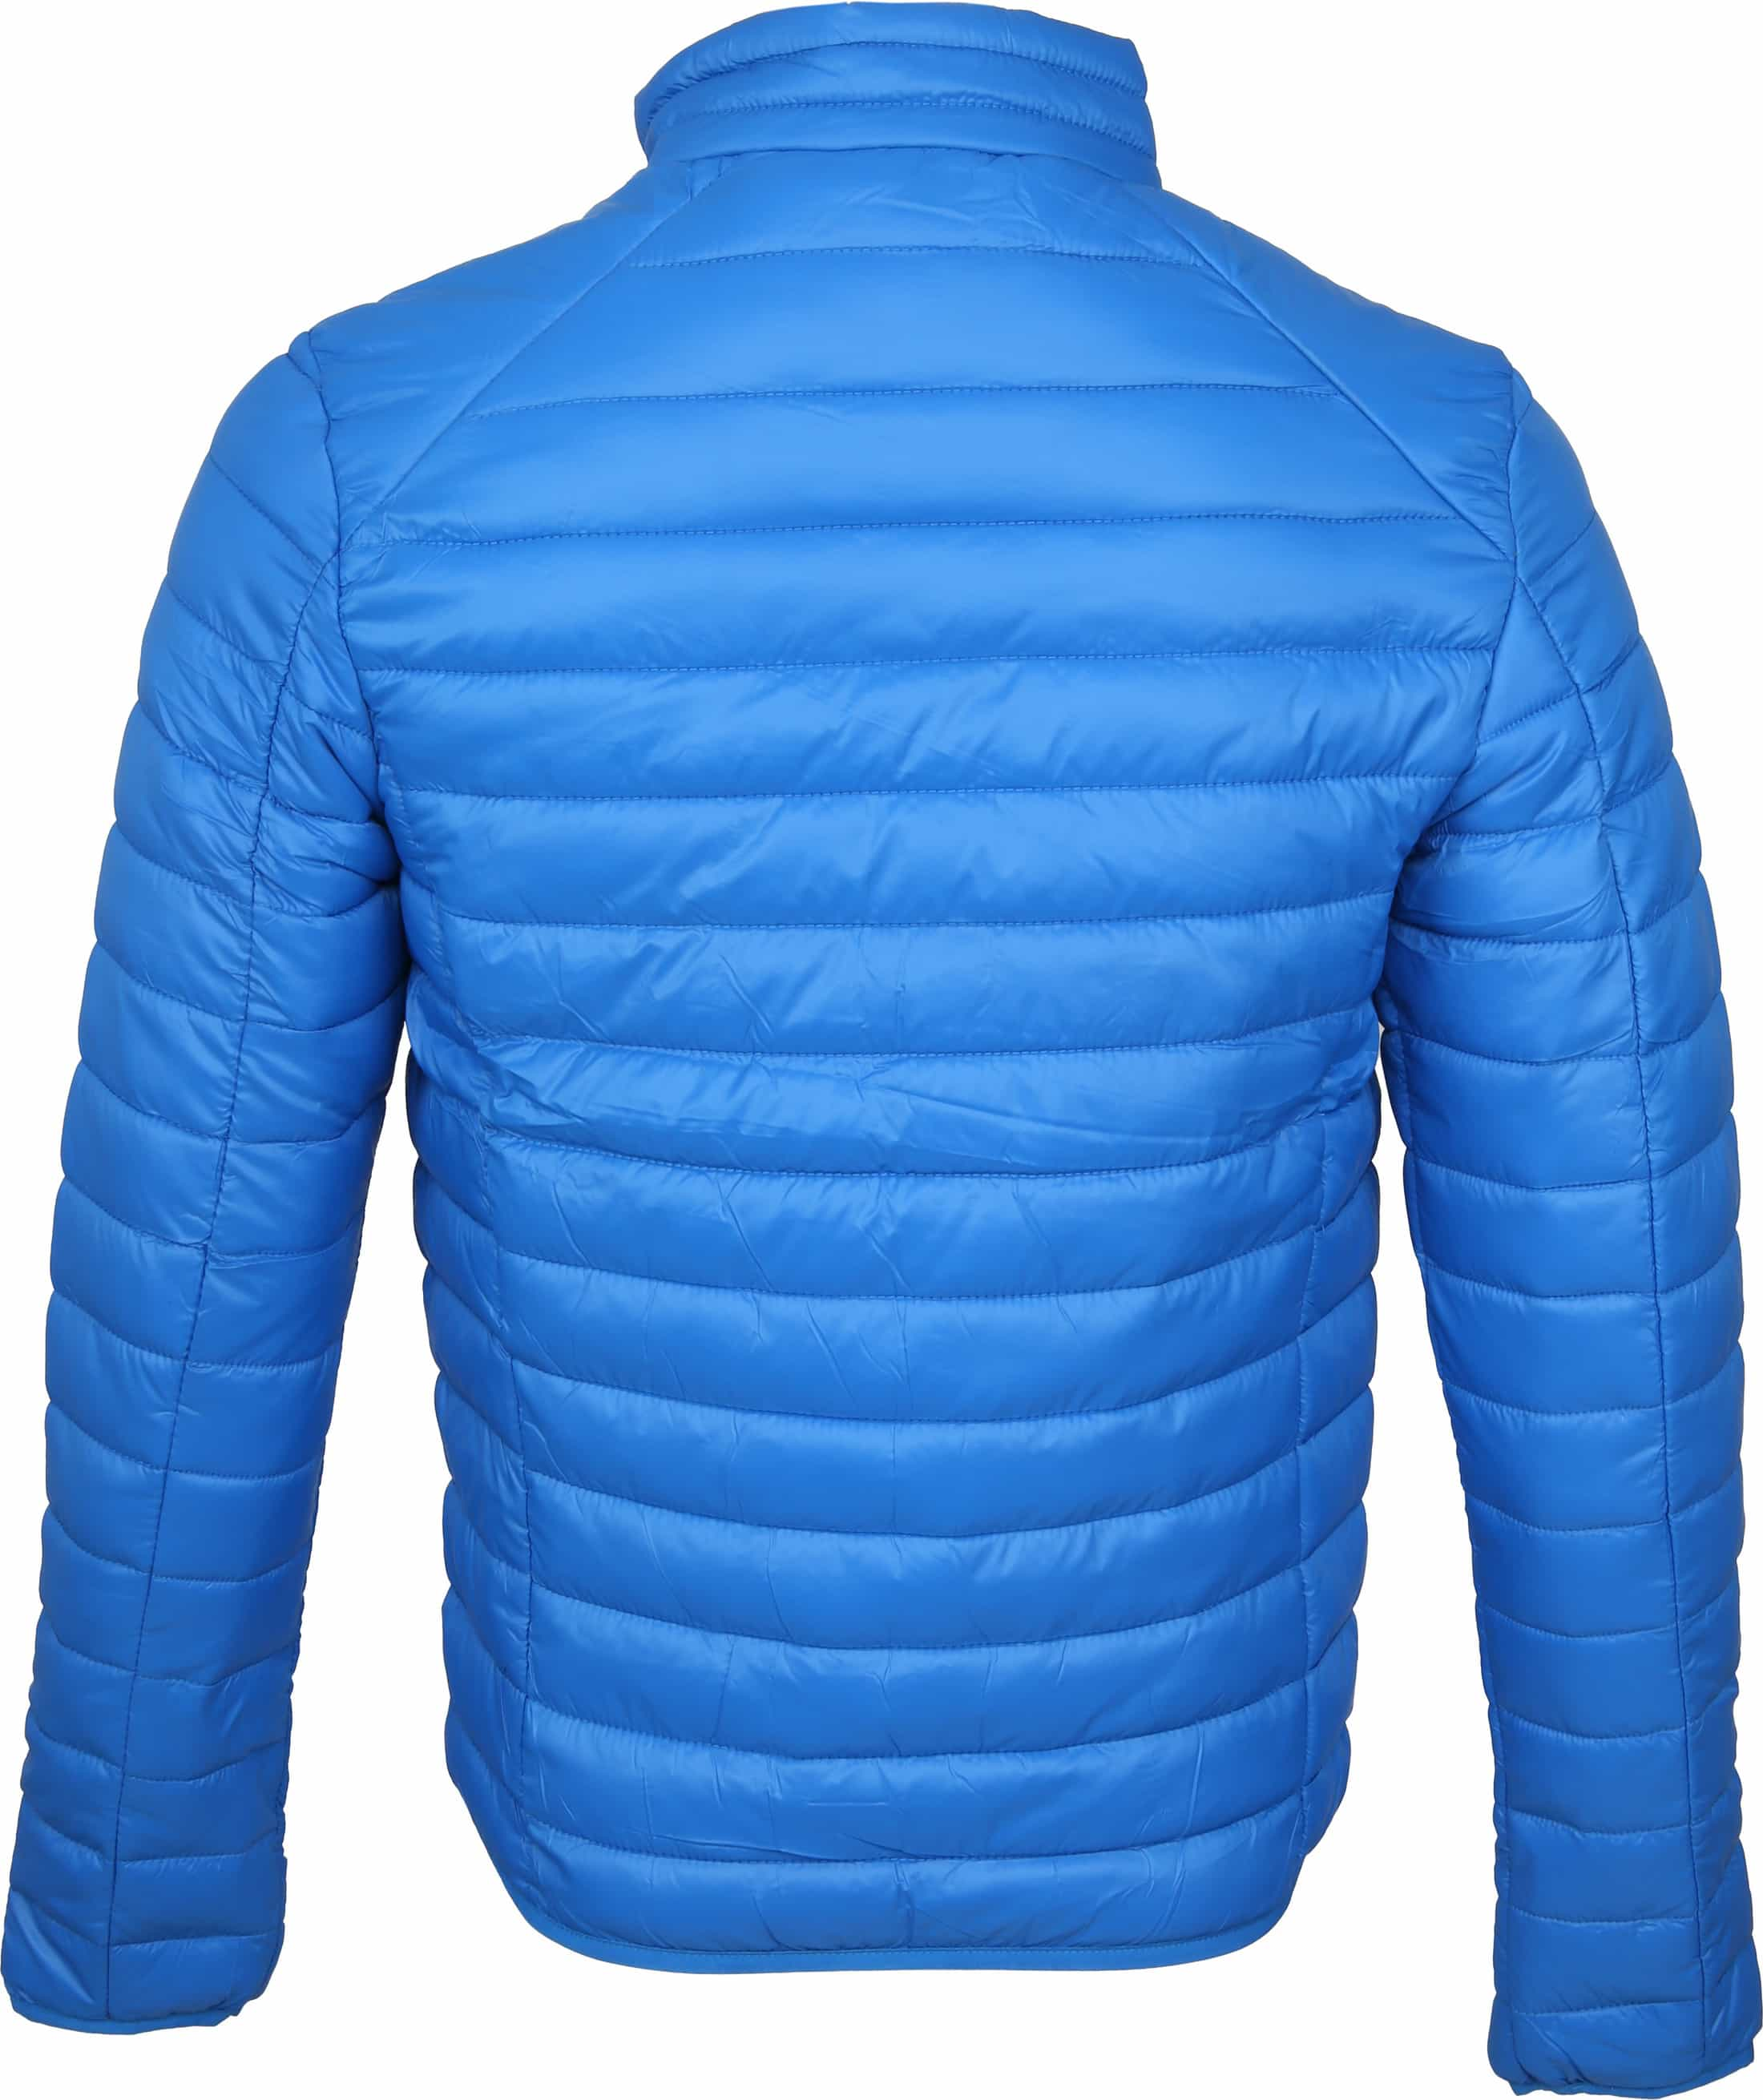 Suitable Jon PCK Jacket Blue foto 4